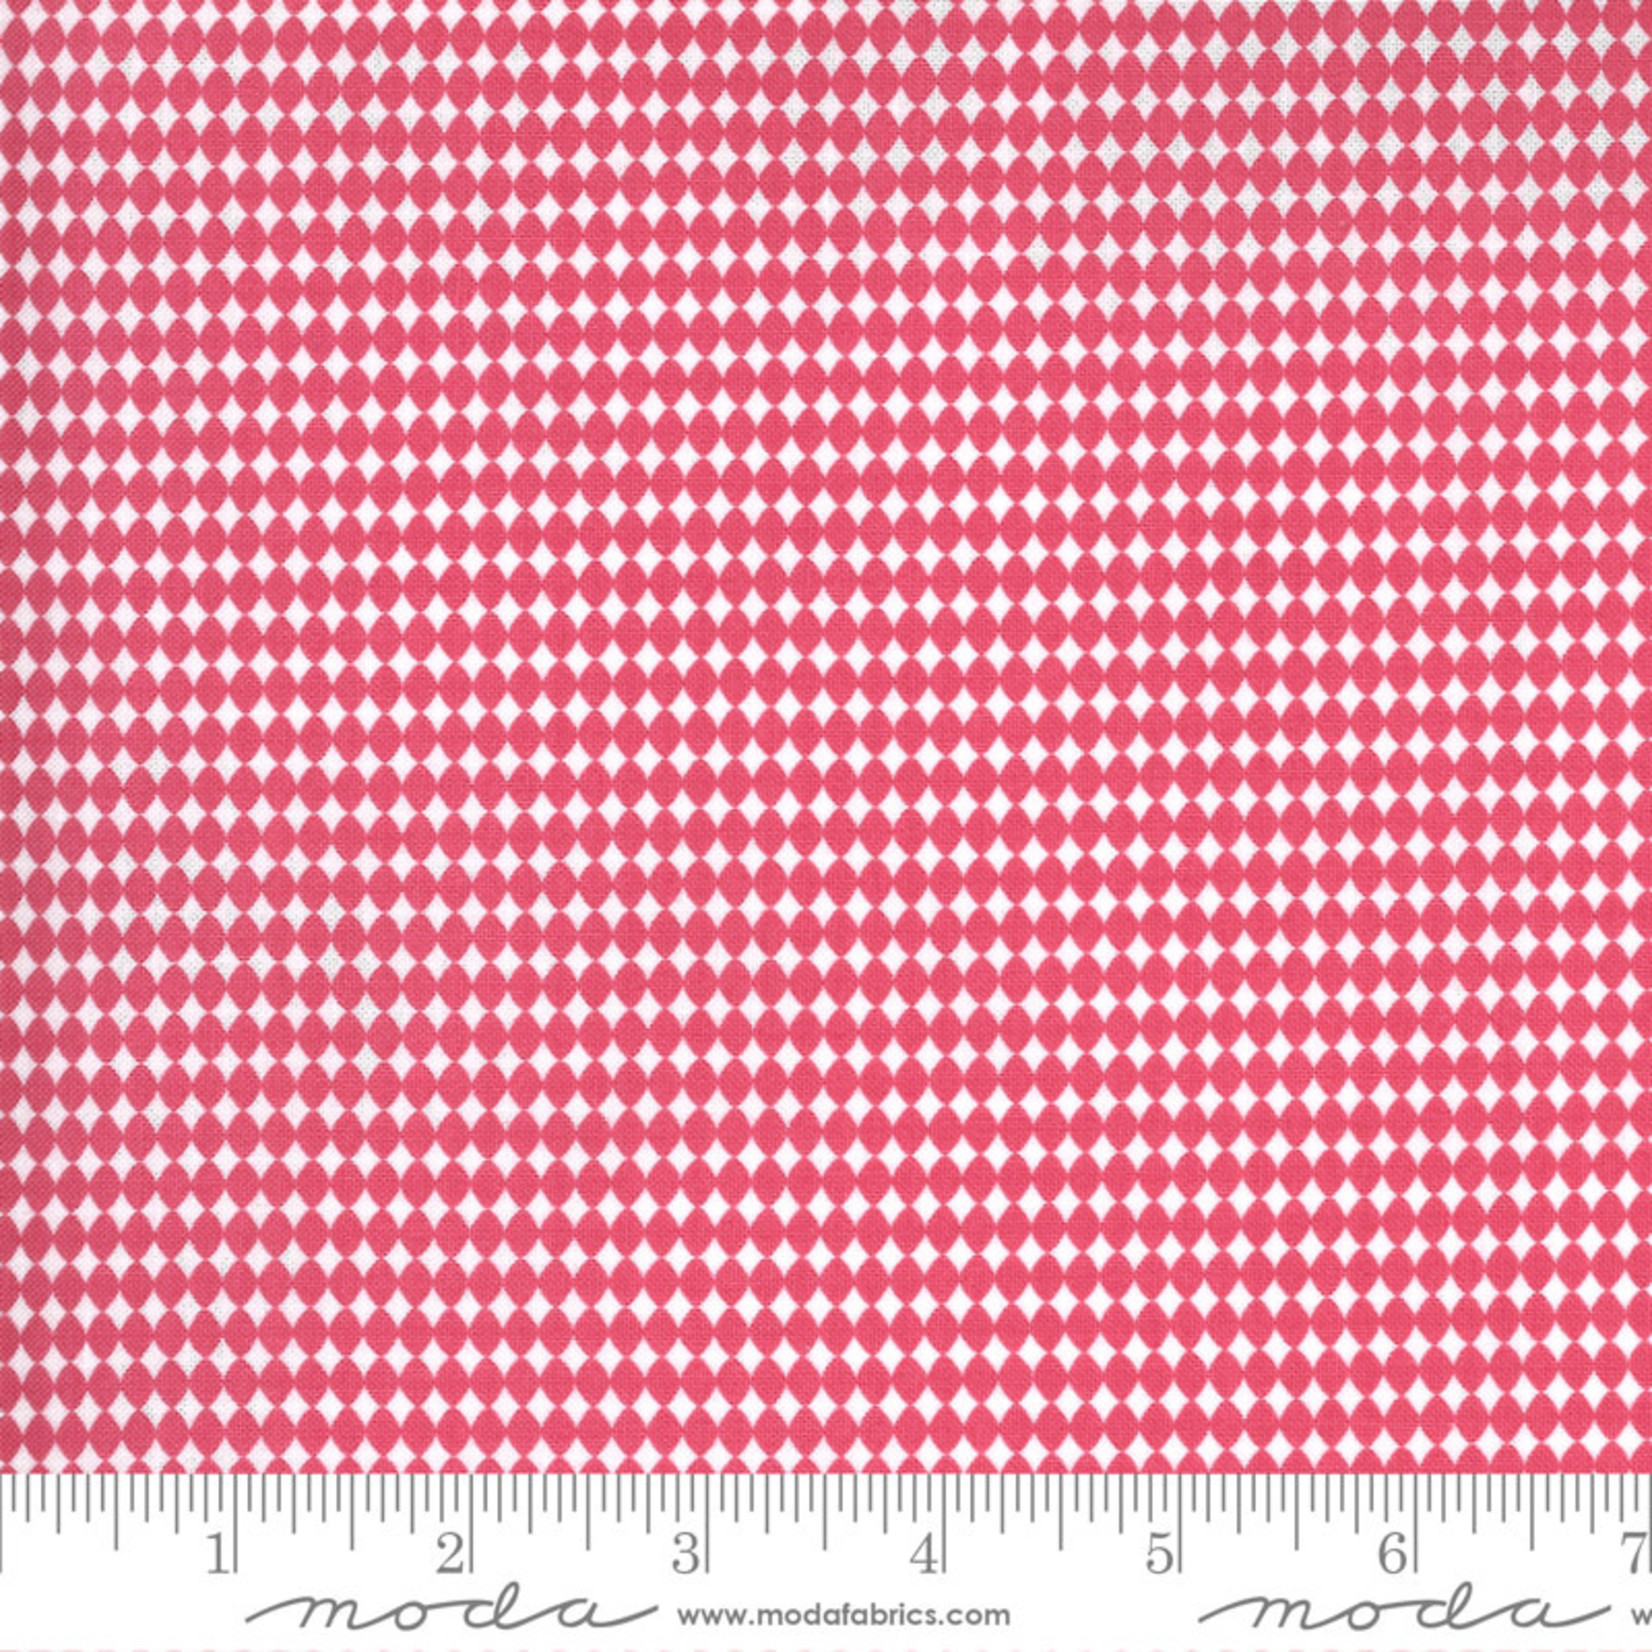 Sweetwater Spring Chicken, Picnic, Pink 55524-12 $0.20 per cm or $20/m